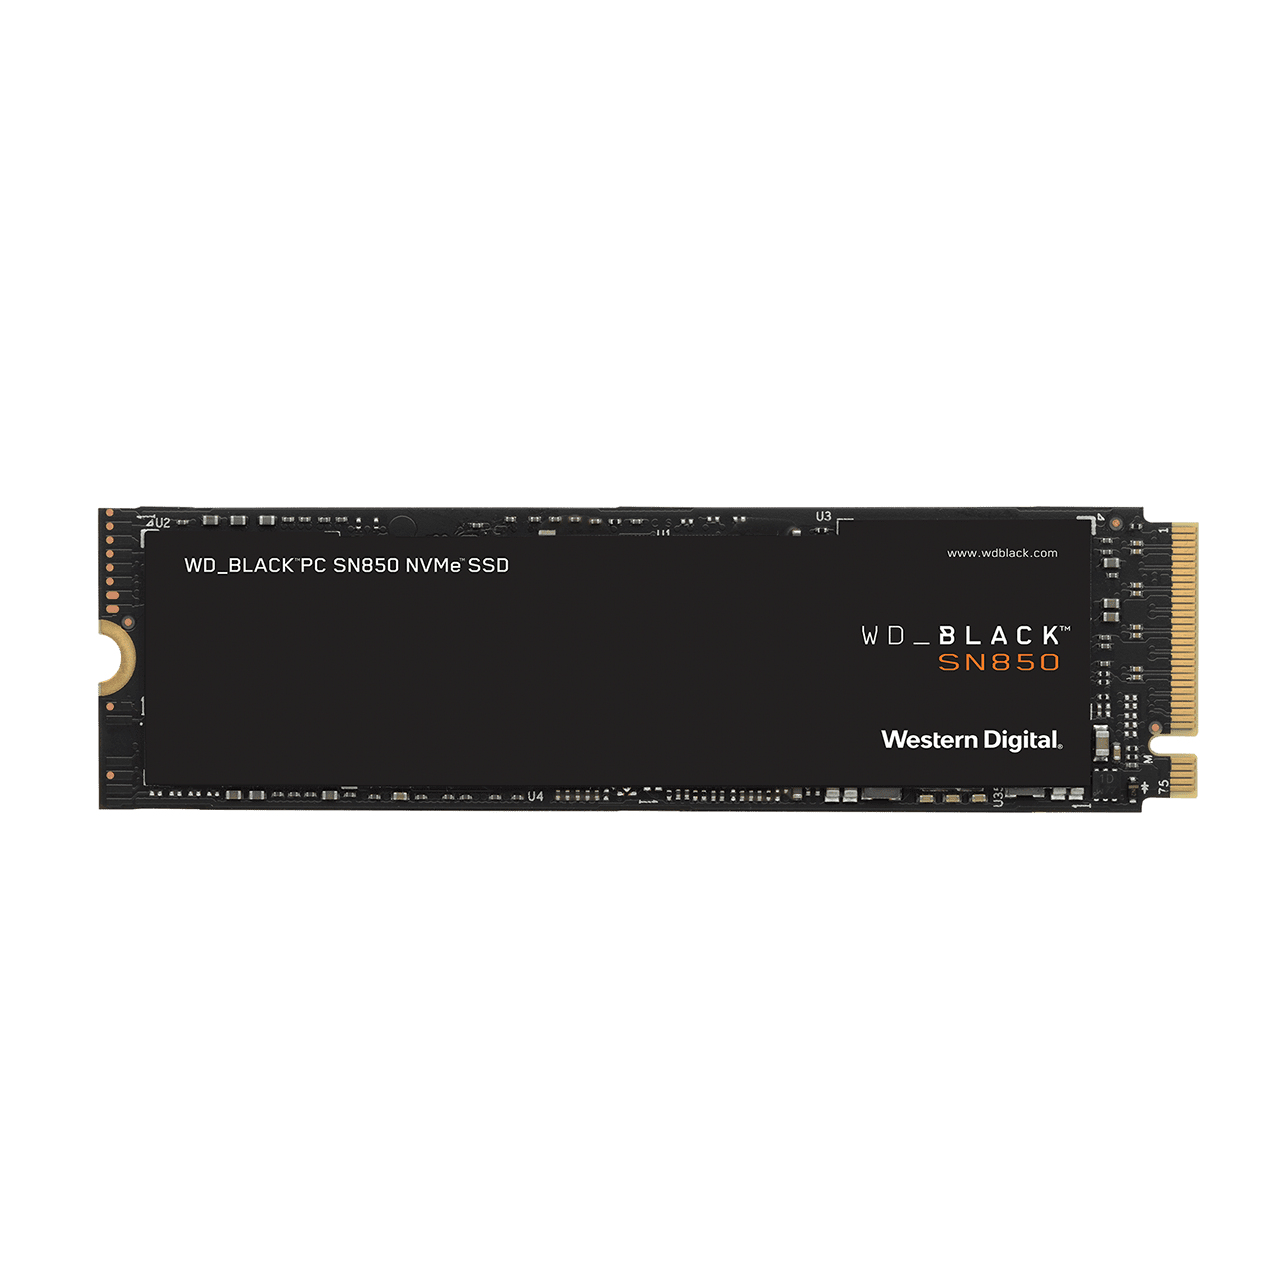 SN850 M.2 2000 GB PCI EXPRESS 4.0 NVME